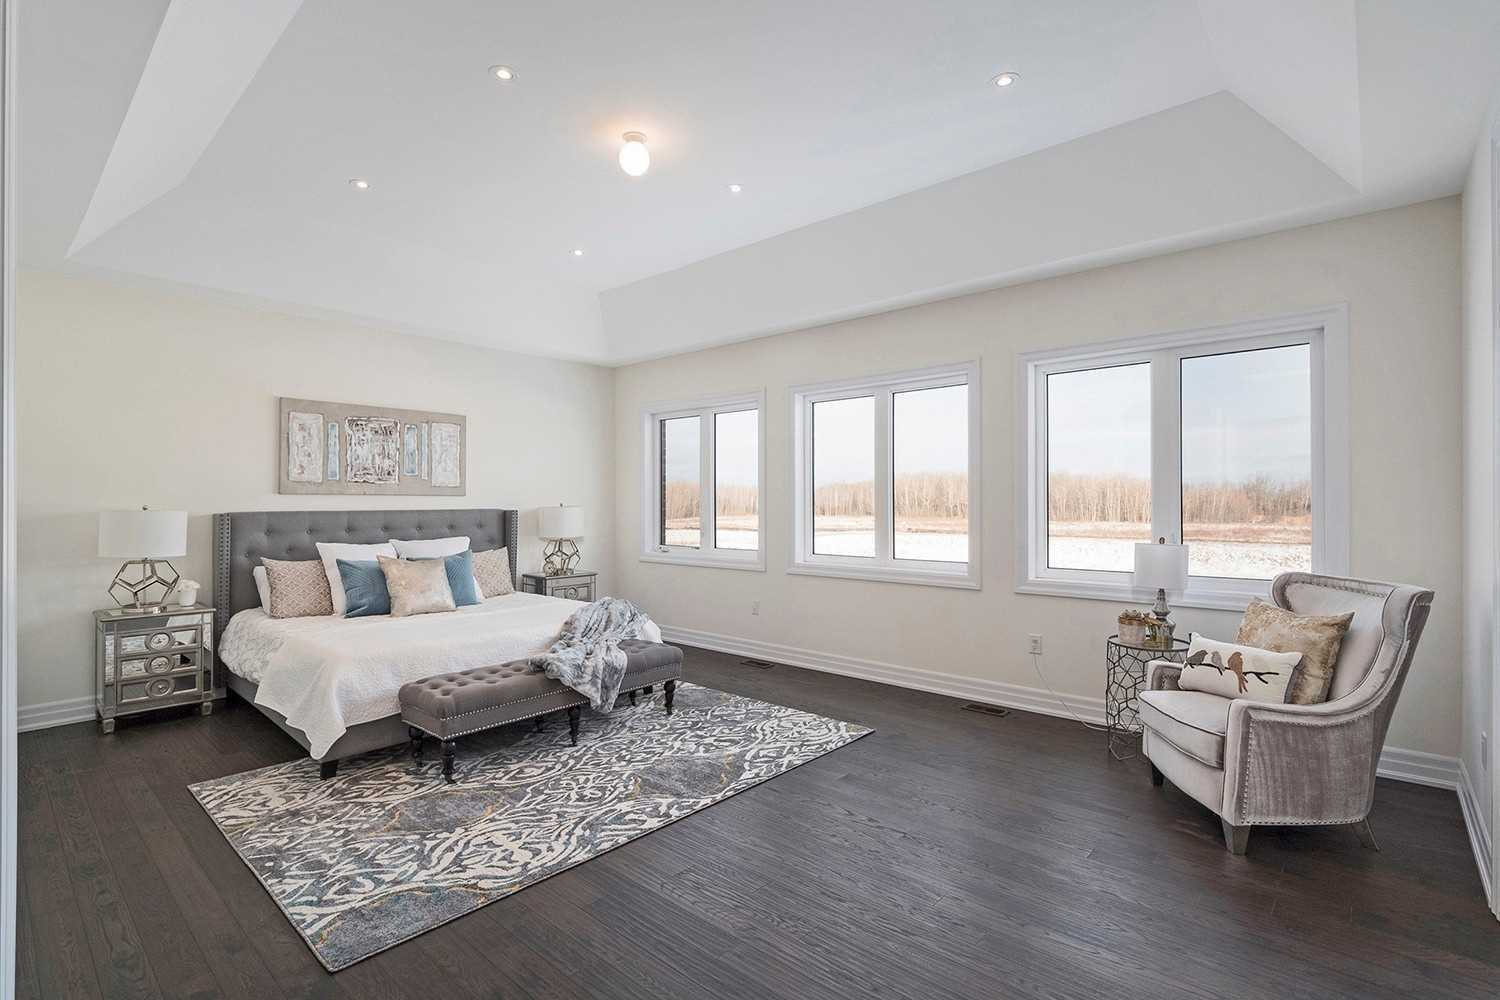 Lot 165 Emberton Way, Innisfil N4547177